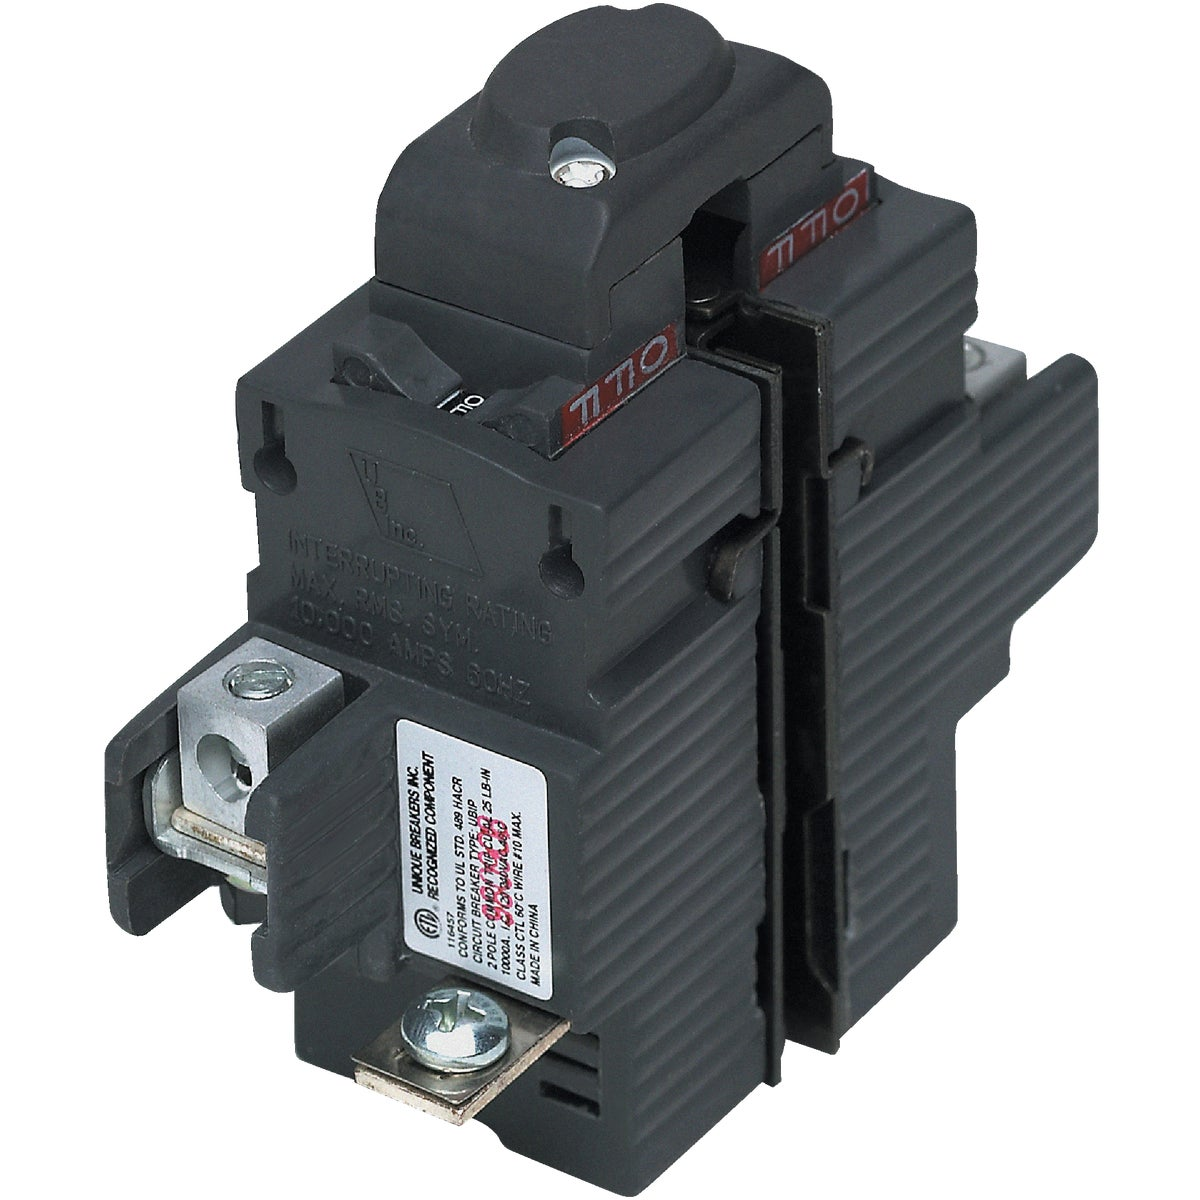 50A 2P CIRCUIT BREAKER - UBIP250 by Connecticut Electric